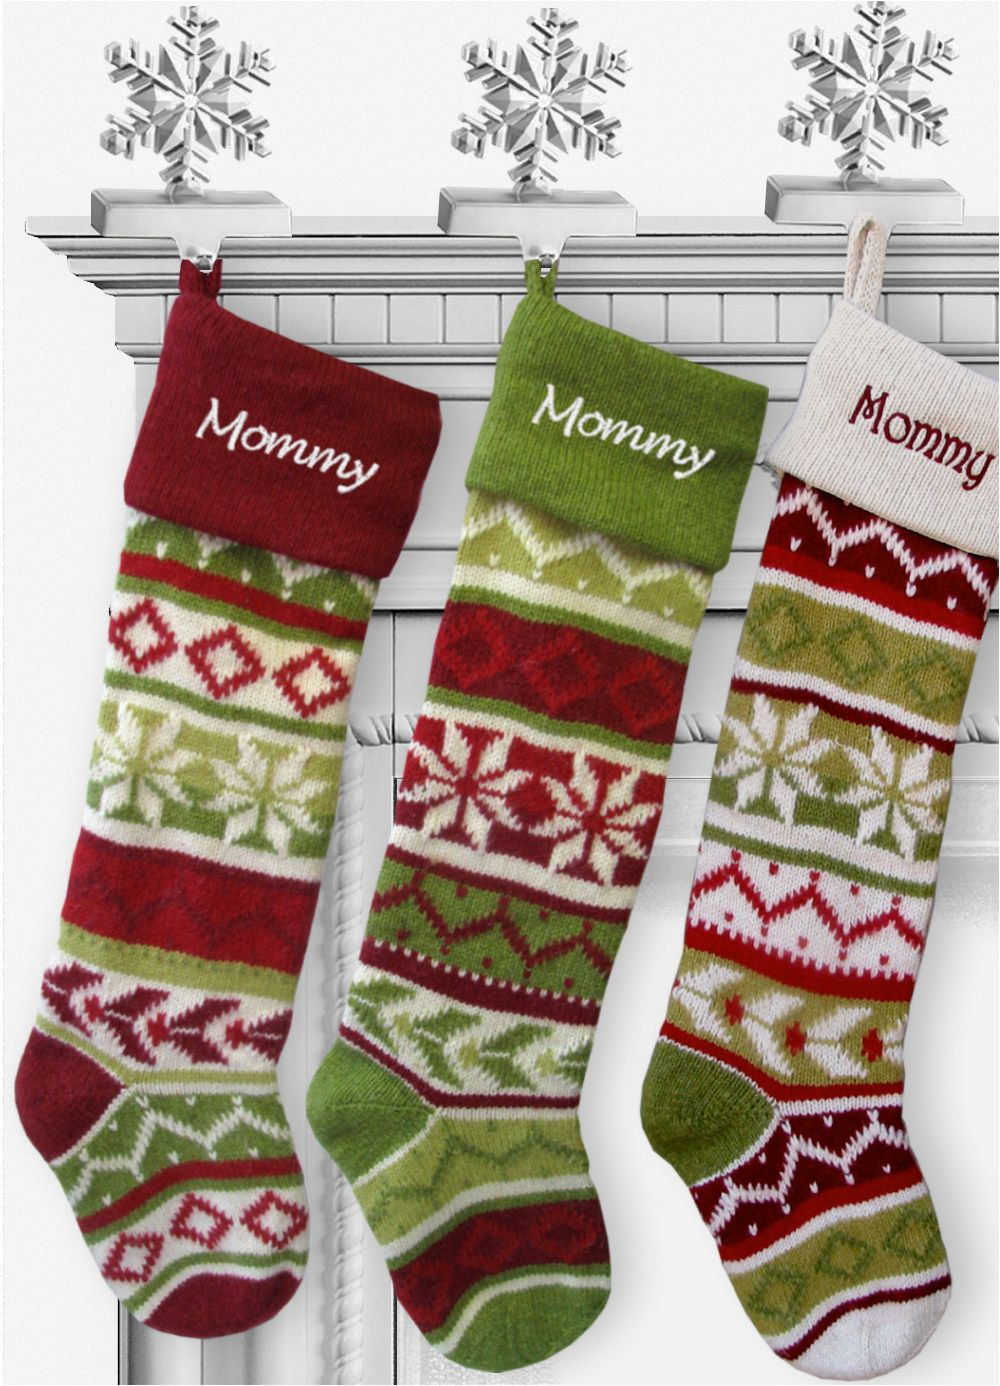 Handmade Christmas Stockings Knit Christmas Stockings 28 Large Personalized Free